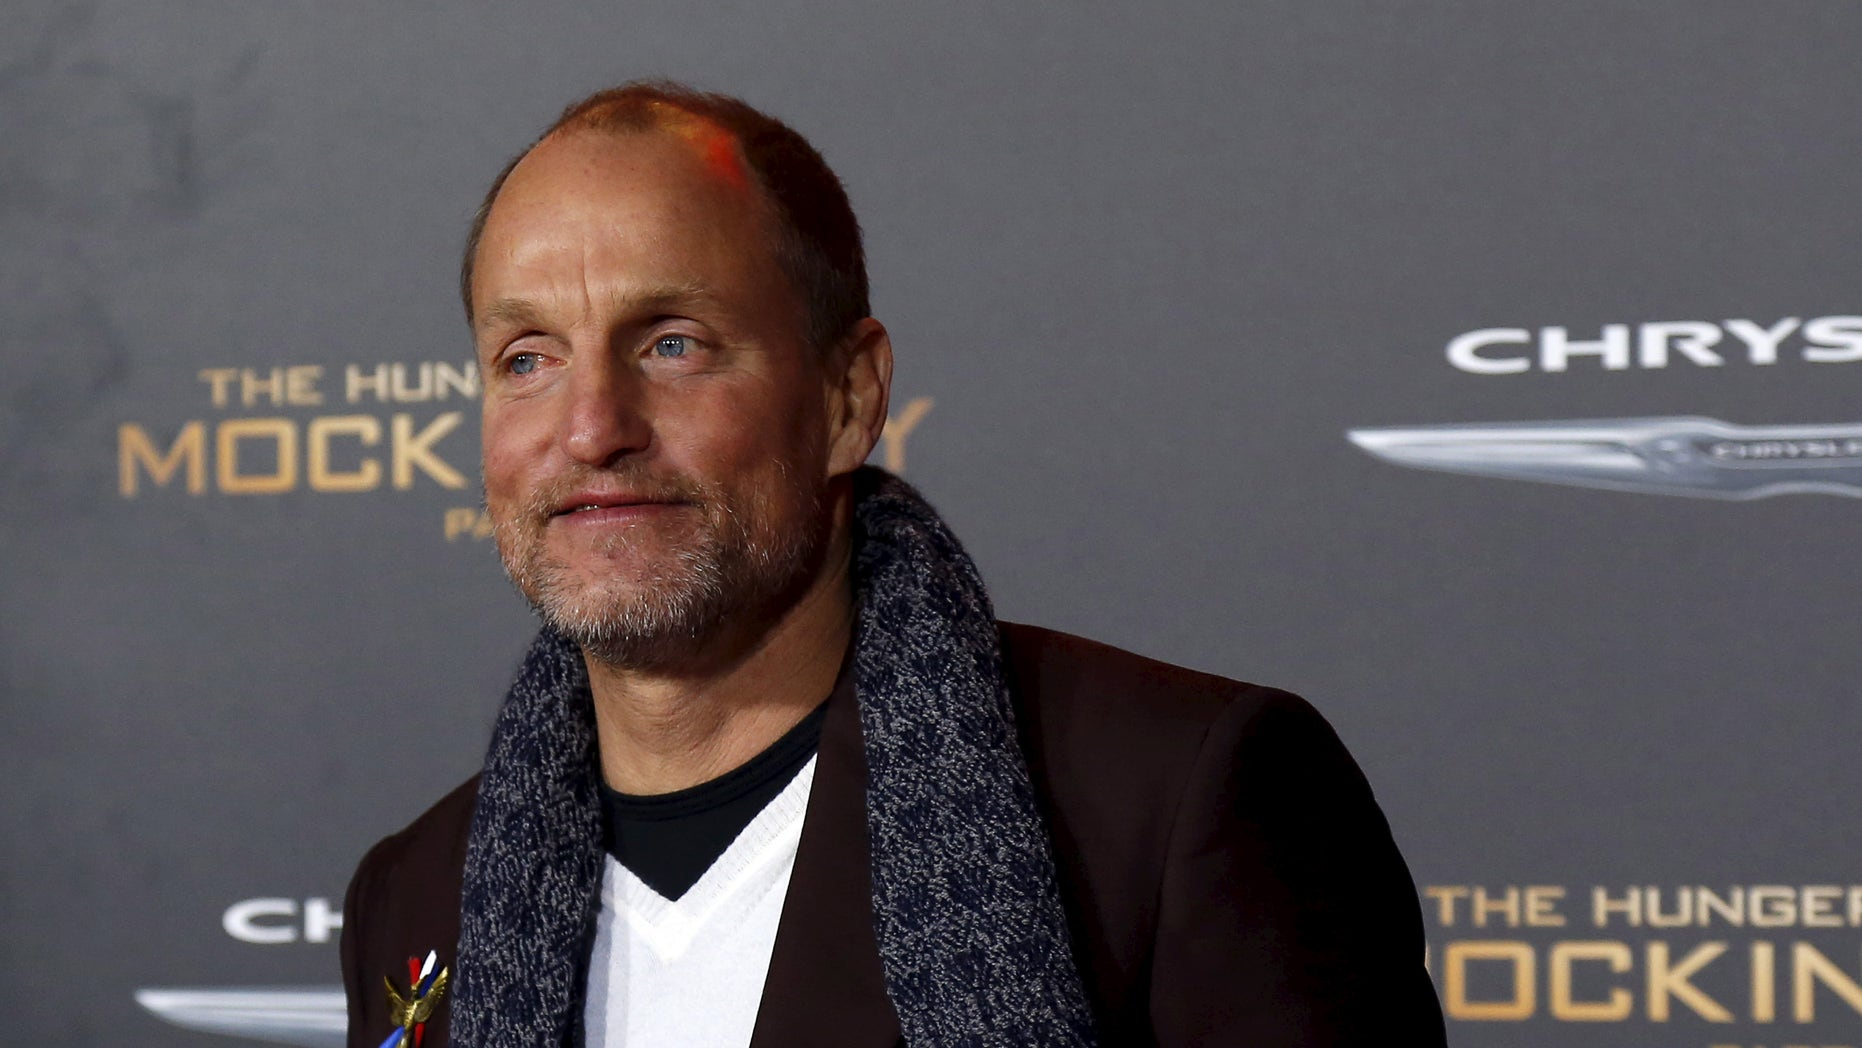 """Cast member Woody Harrelson poses at the premiere of """"The Hunger Games: Mockingjay - Part 2"""" in Los Angeles, California November 16, 2015. The movie opens in the U.S. on November 20.  REUTERS/Mario Anzuoni - RTS7H8K"""